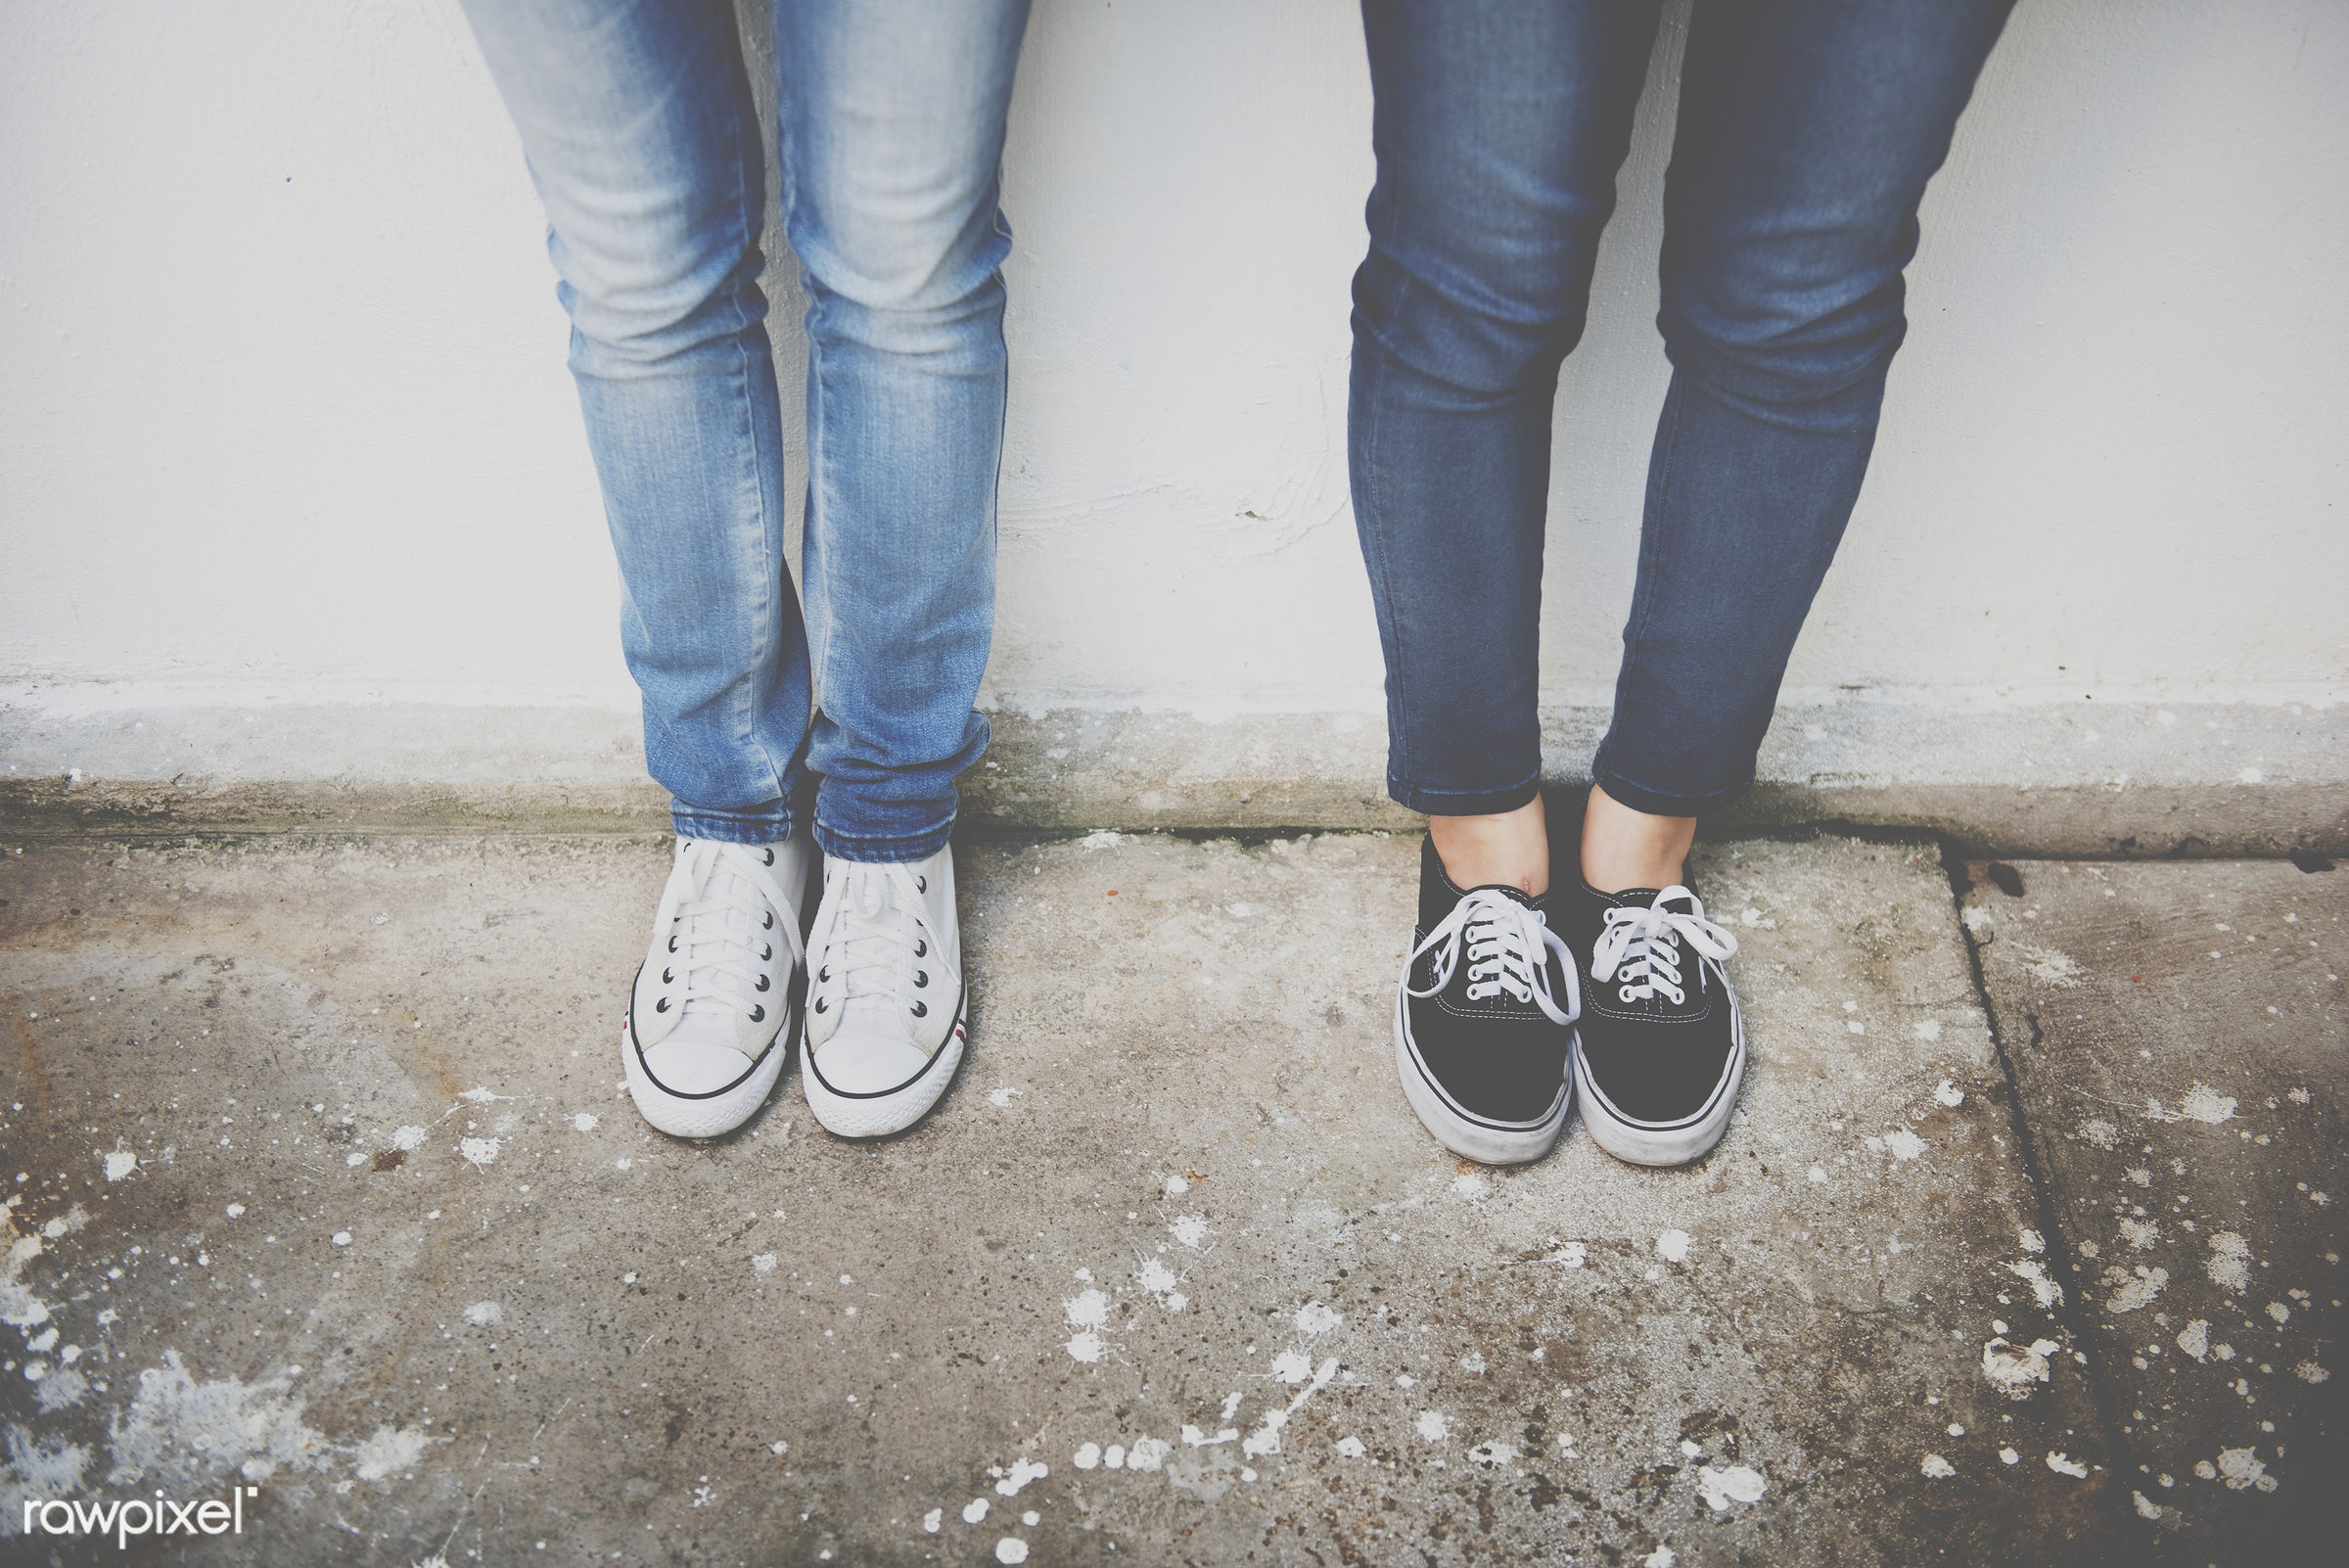 Closeup of pairs of legs in jeans - closeup, foot, friends, friendship, girls, jeans, legs, pair, shoes, sneakers, standing...